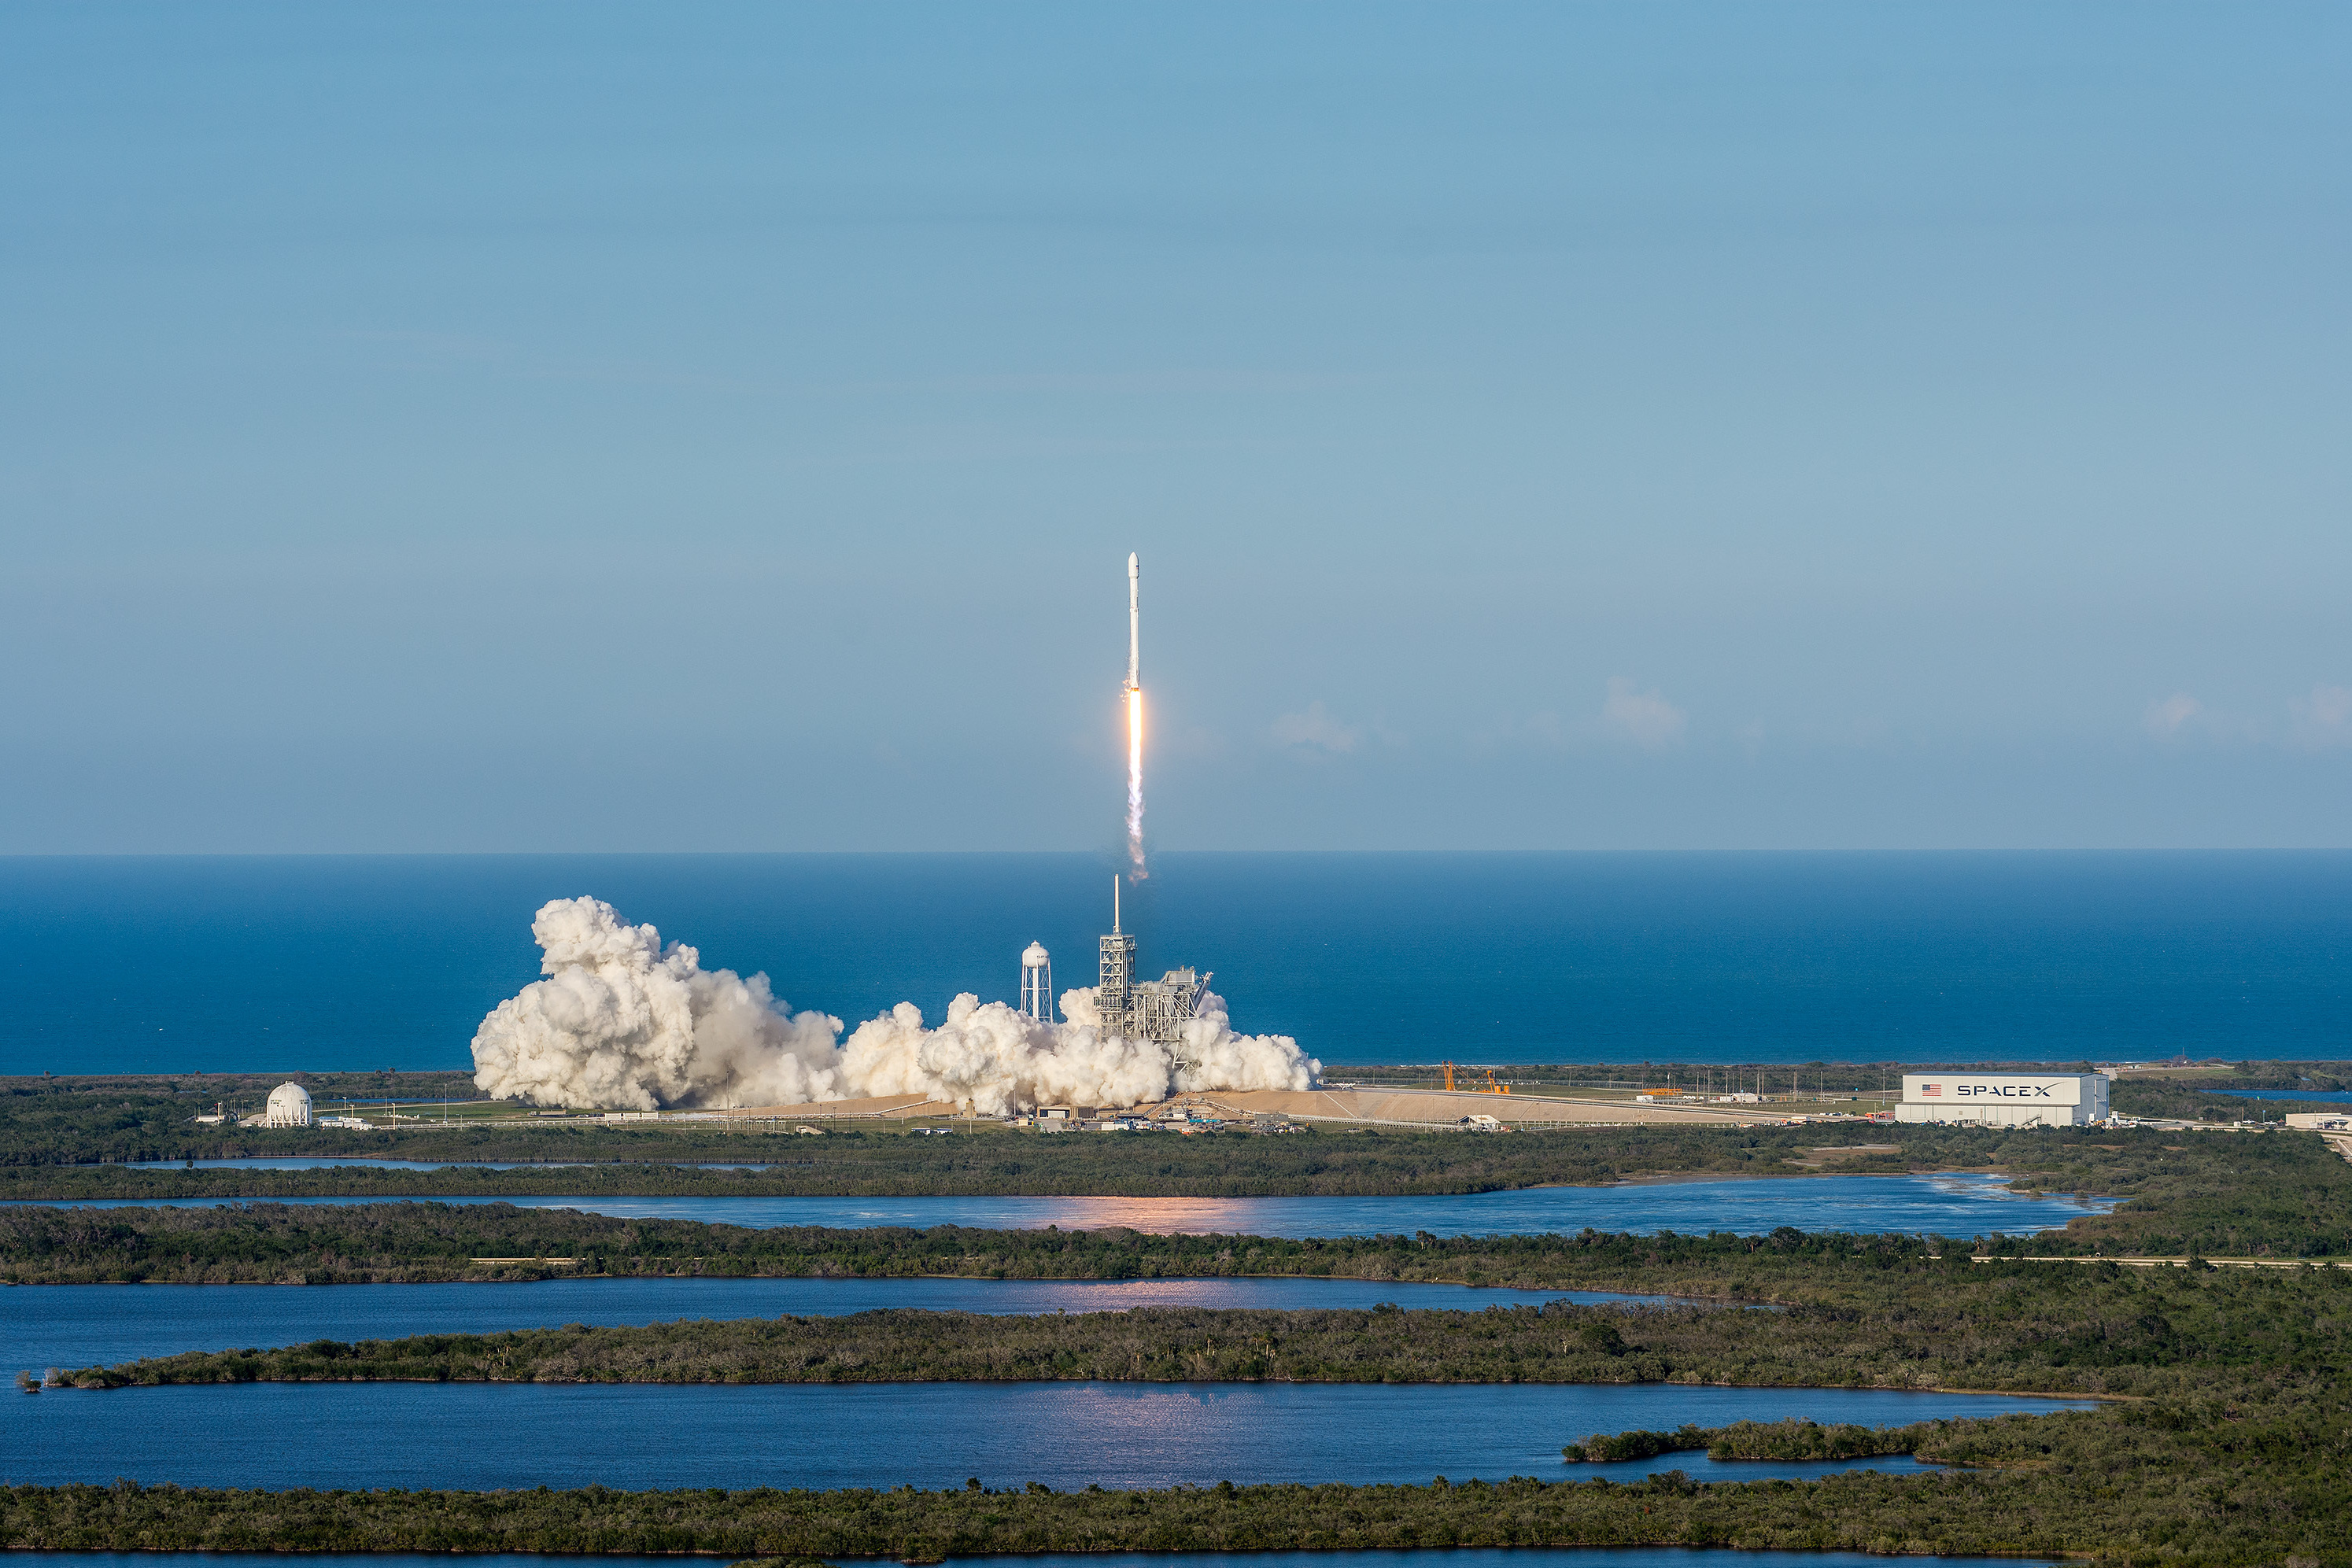 They did it! SpaceX launches and lands re-used rocket